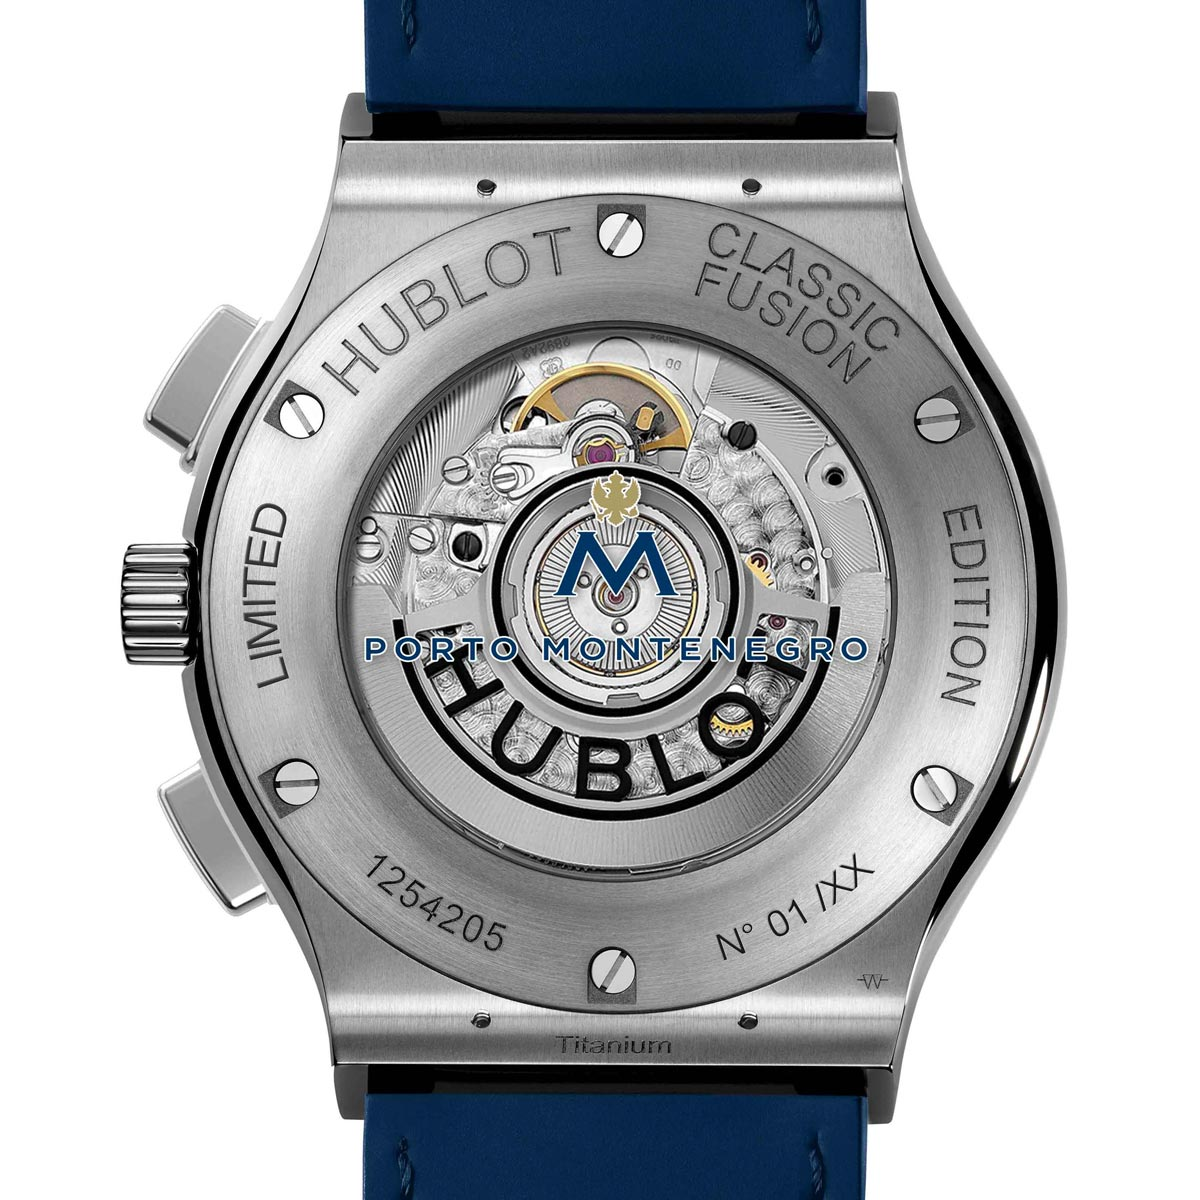 La Cote des Montres : Photo - Hublot devient le chronométreur officiel de Porto Montenegro Marina and Yacht Club